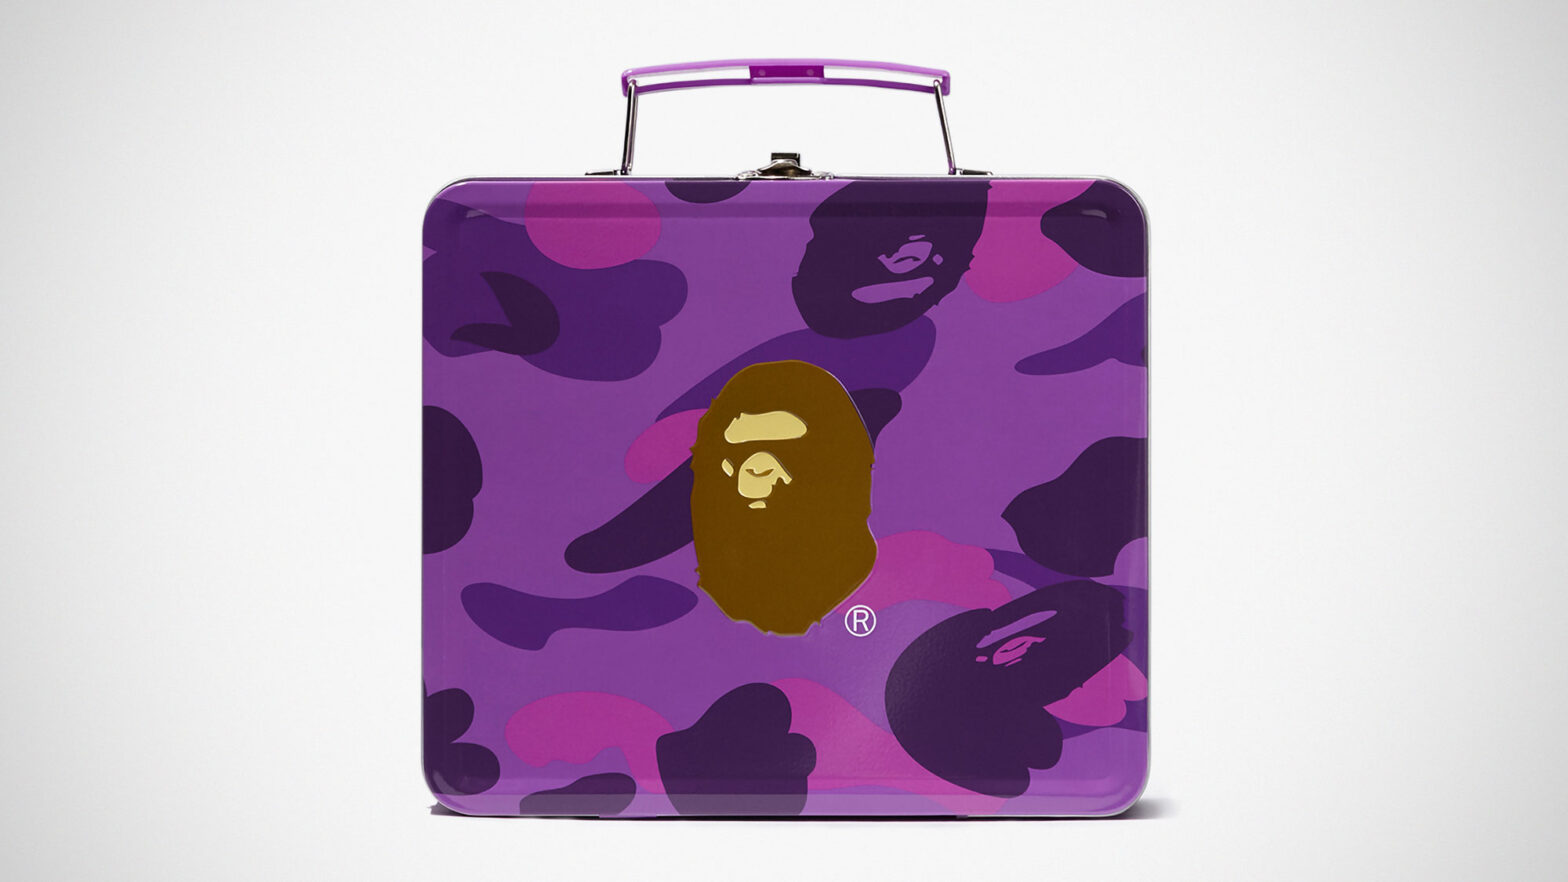 BAPE 2020 Limited Edition Mooncake Gift Box